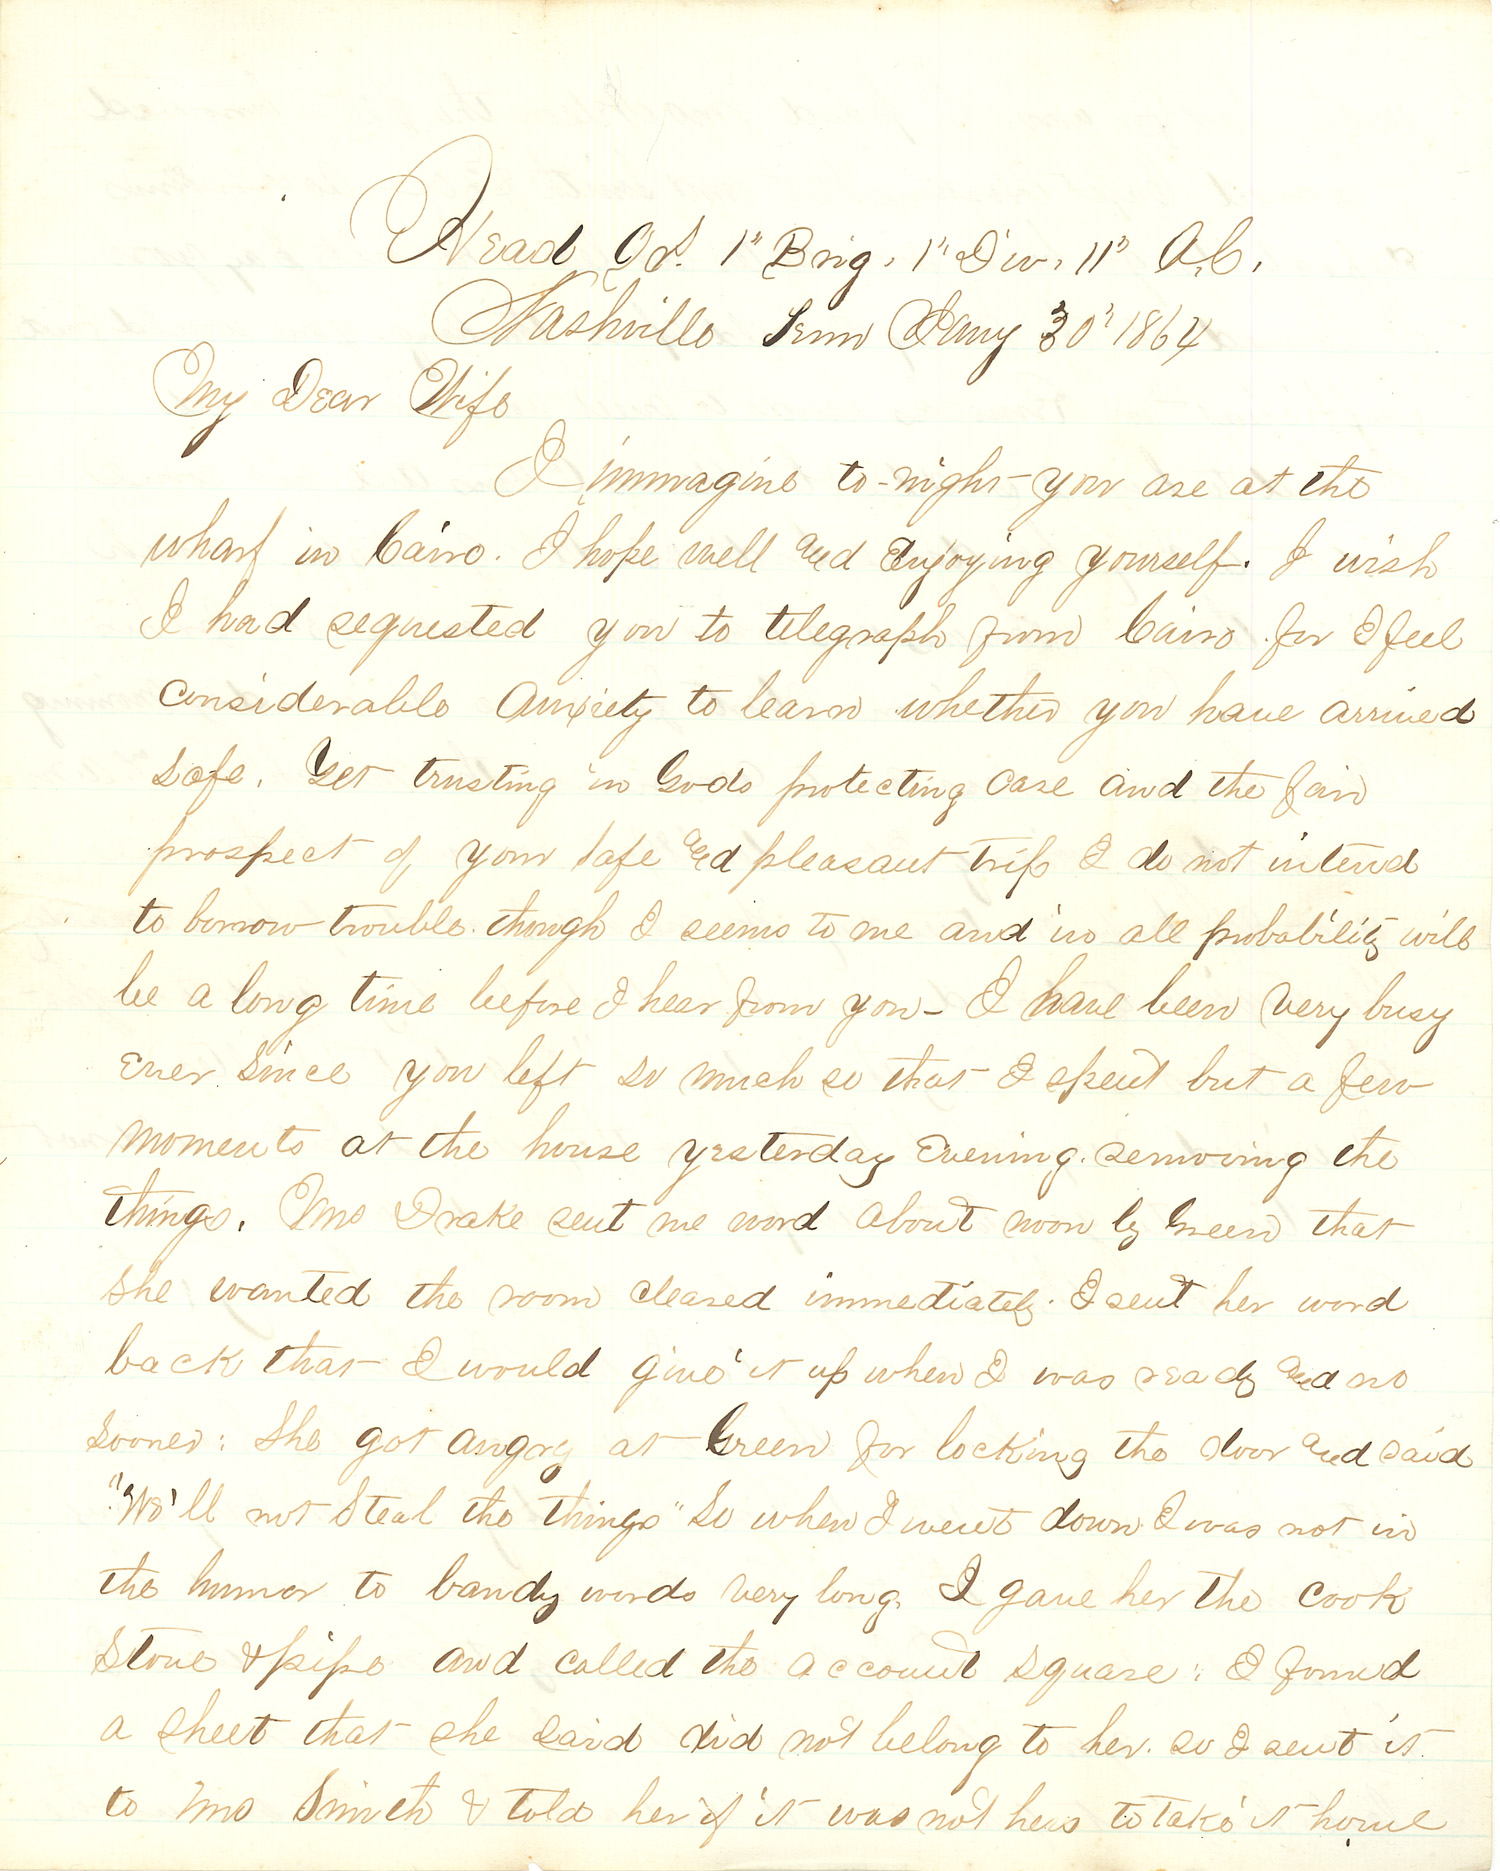 Joseph Culver Letter, January 30, 1864, Page 1